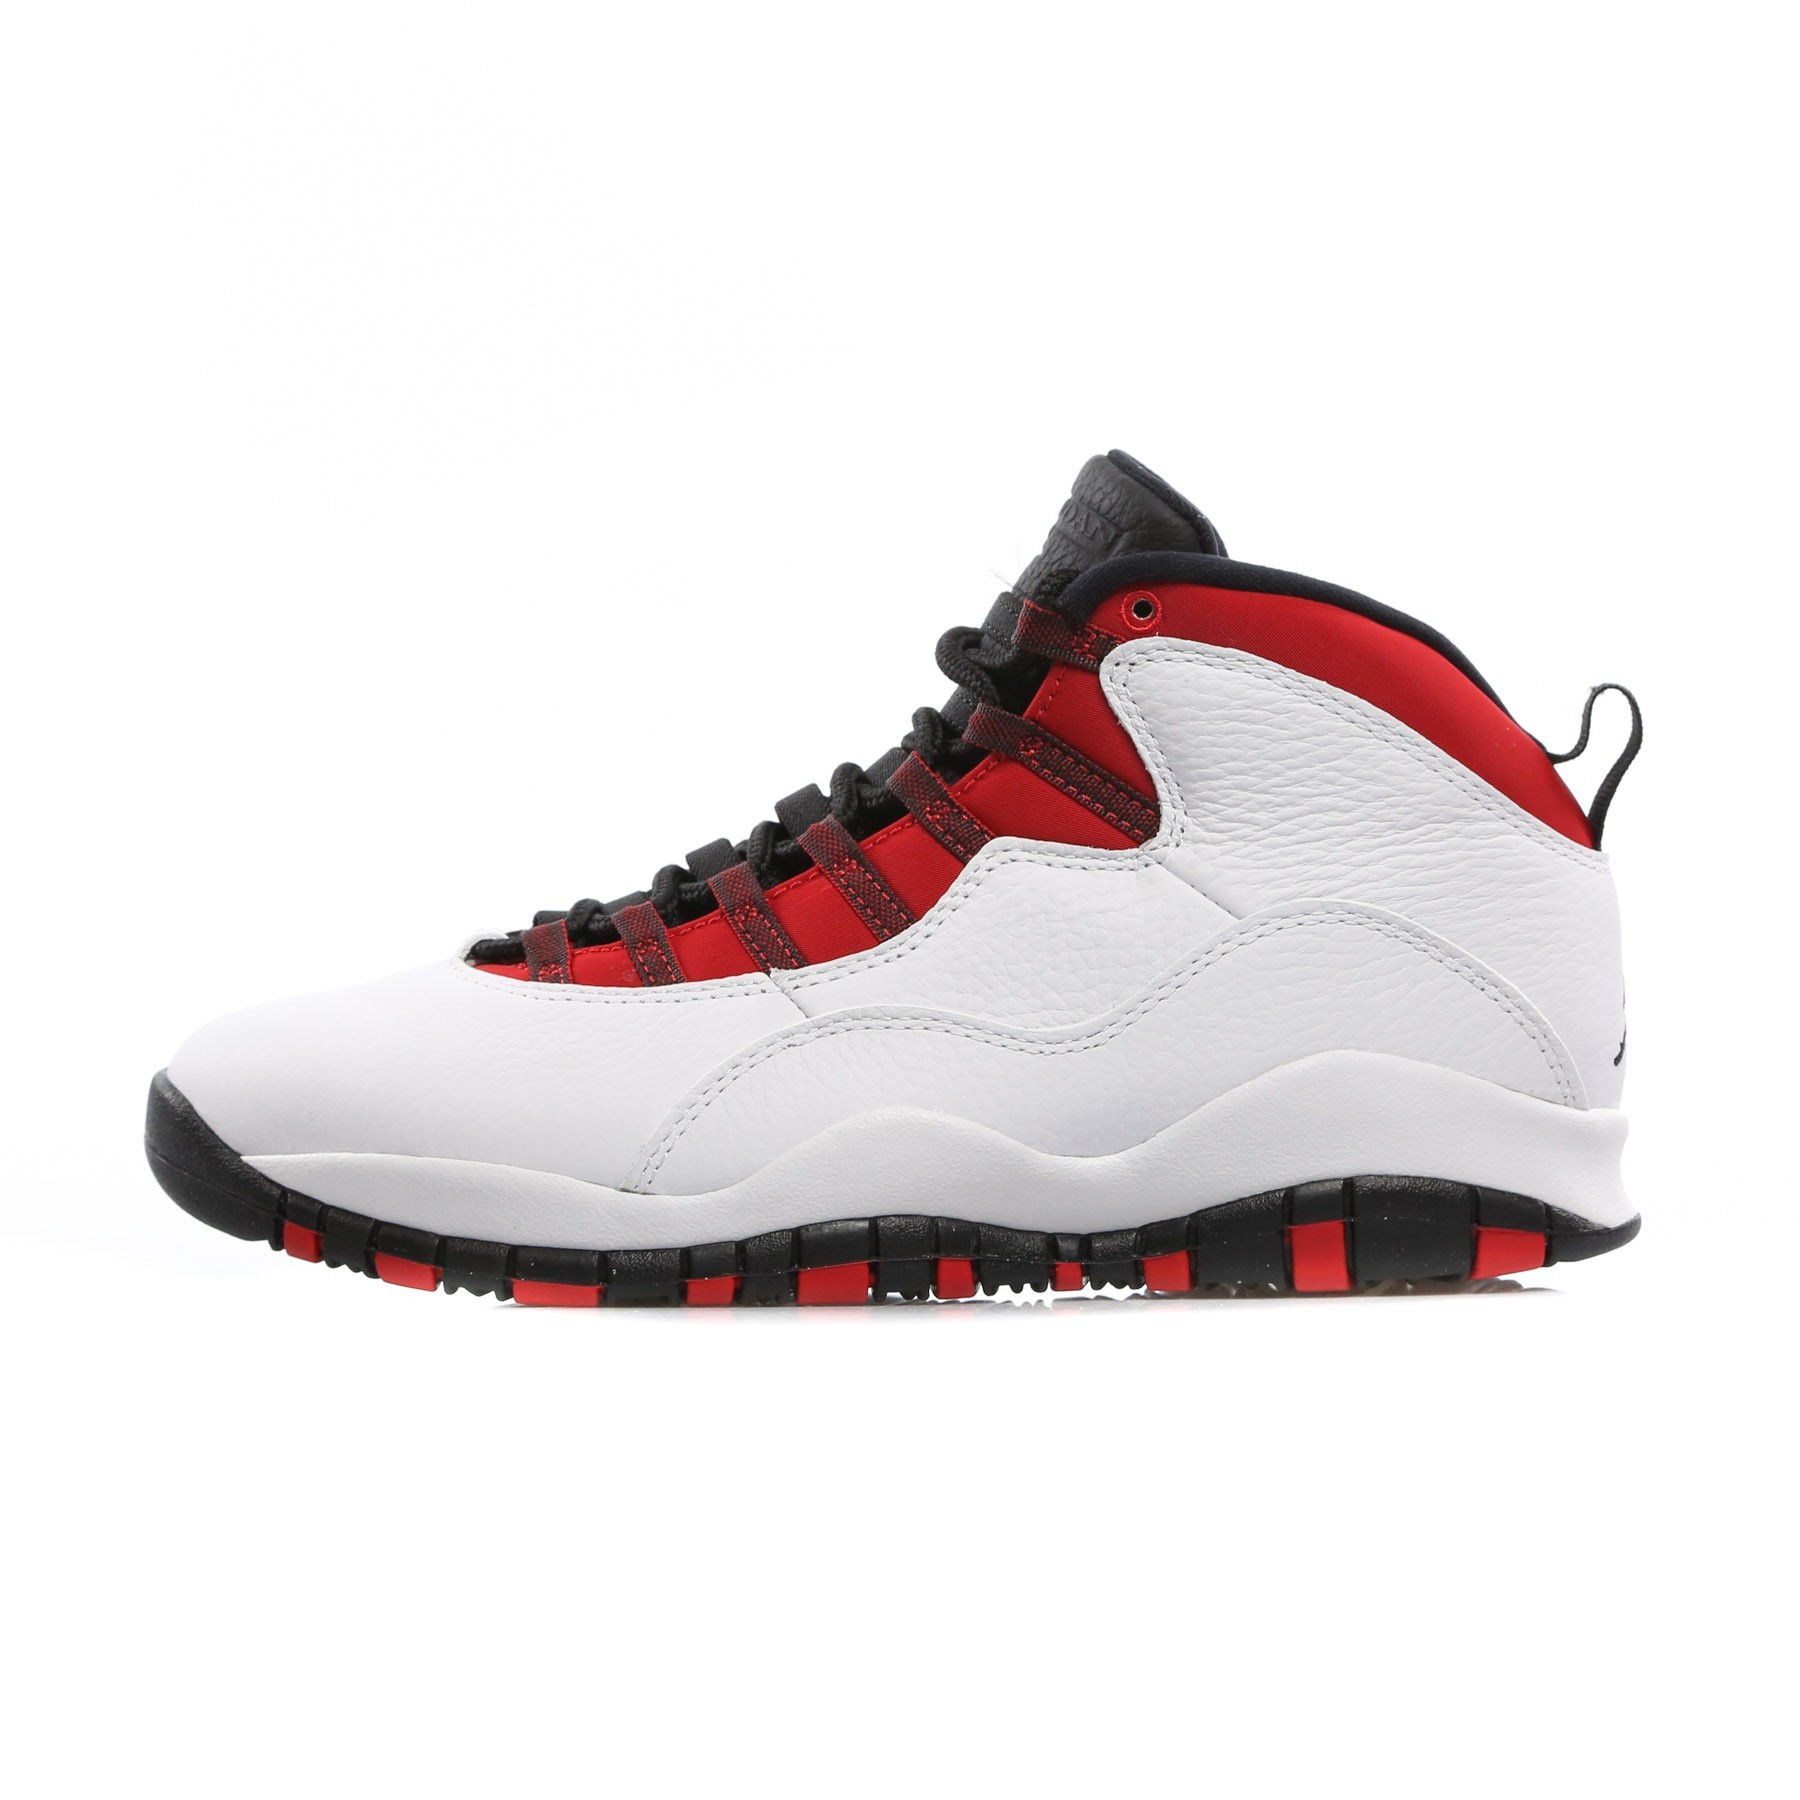 sports shoes c4977 e544e HIGH SHOE AIR JORDAN 10 RETRO CLASS OF 2006 WHITE BLACK UNIVERSITY RED